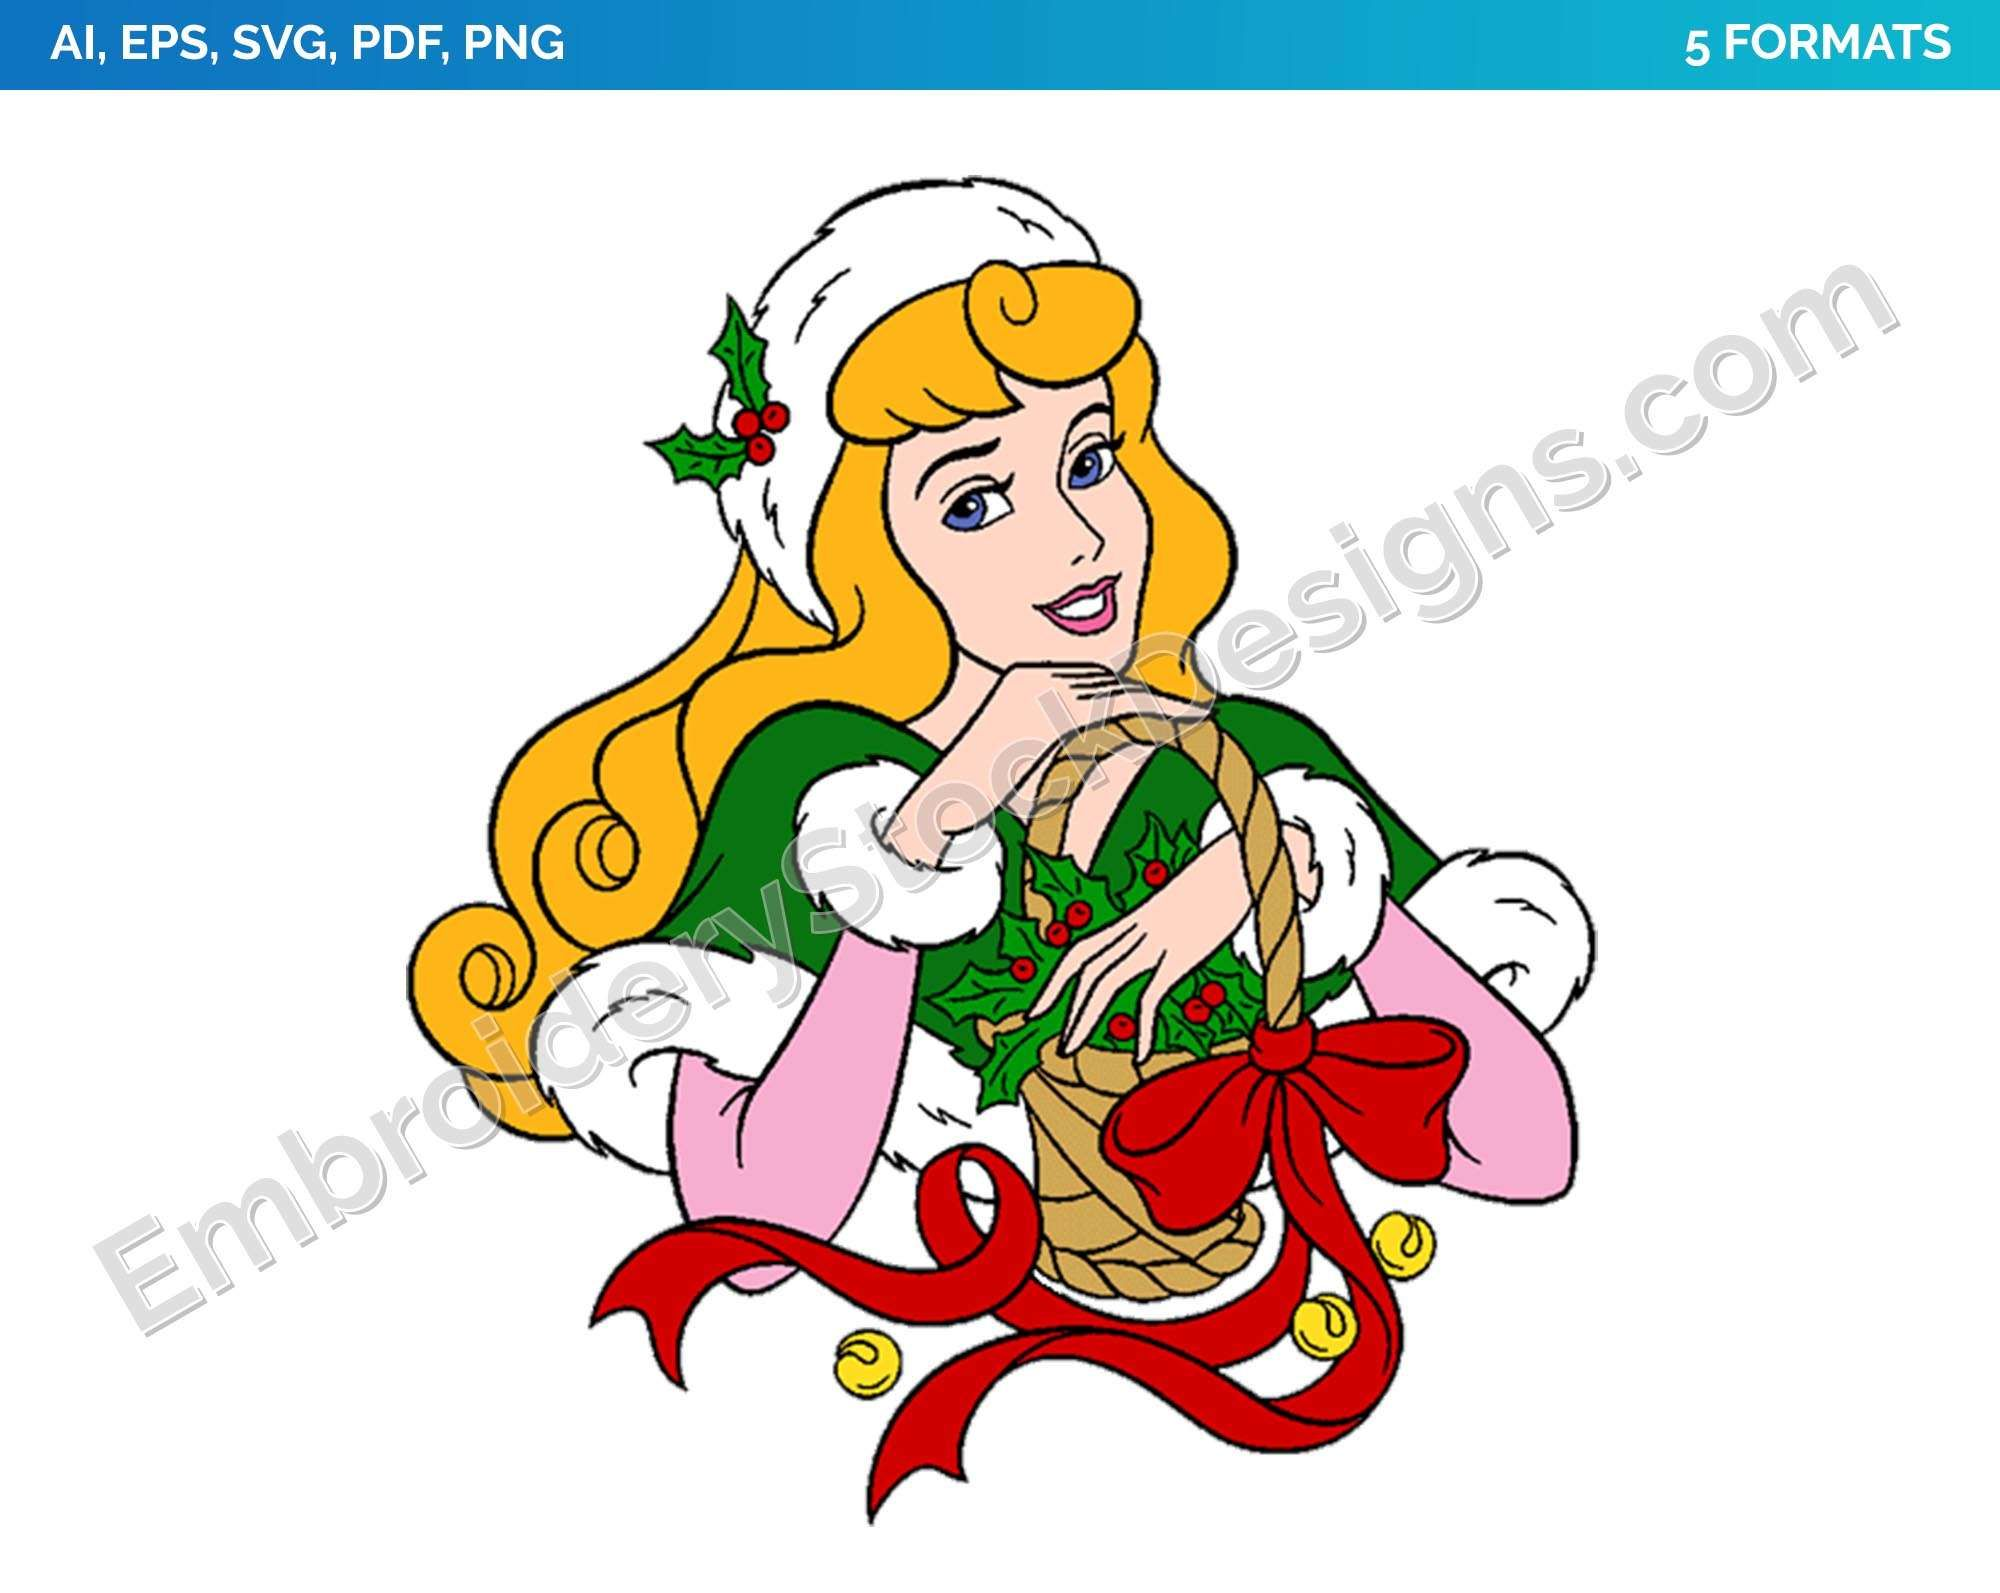 Aurora 5 Princess Christmas Holiday Disney Character Designs As Svg Vector For Print In 5 Formats Dsnyh000057 Embroidery Stock Designs In 2020 Disney Characters Disney Princess Aurora Disney Clipart